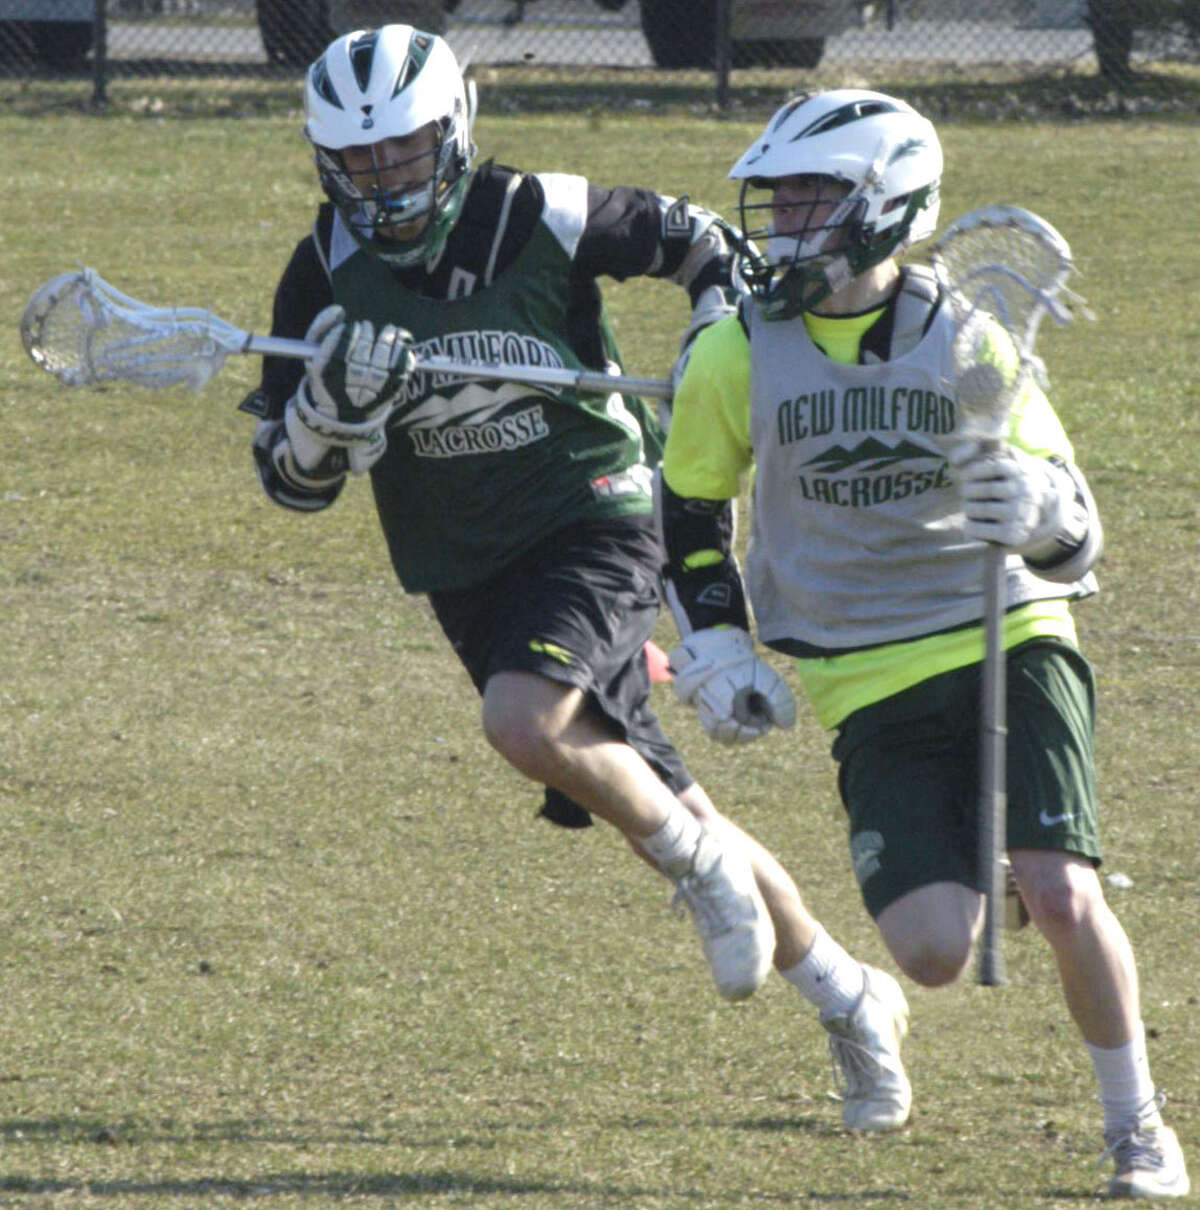 Blaine McMahon and A.J. McDonald of the Green Wave go at it 100 percent during practice for New Milford High School boys' lacrosse, April 2013